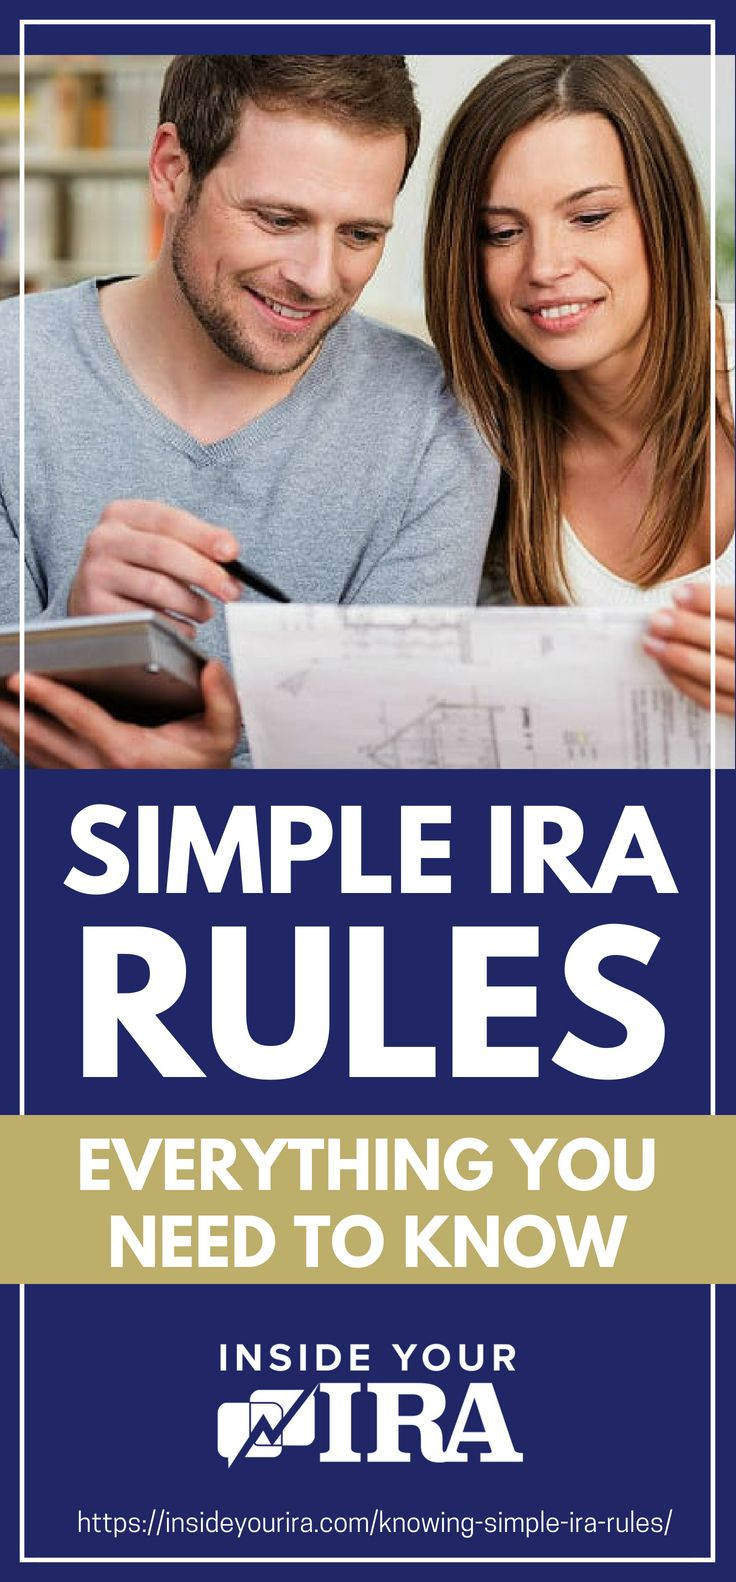 SIMPLE IRA Rules: Everything You Need To Know | Inside Your IRA Depositing Employees' Contributions | Simple IRA Rules | Everything You Need To Know | simple ira rules for small business